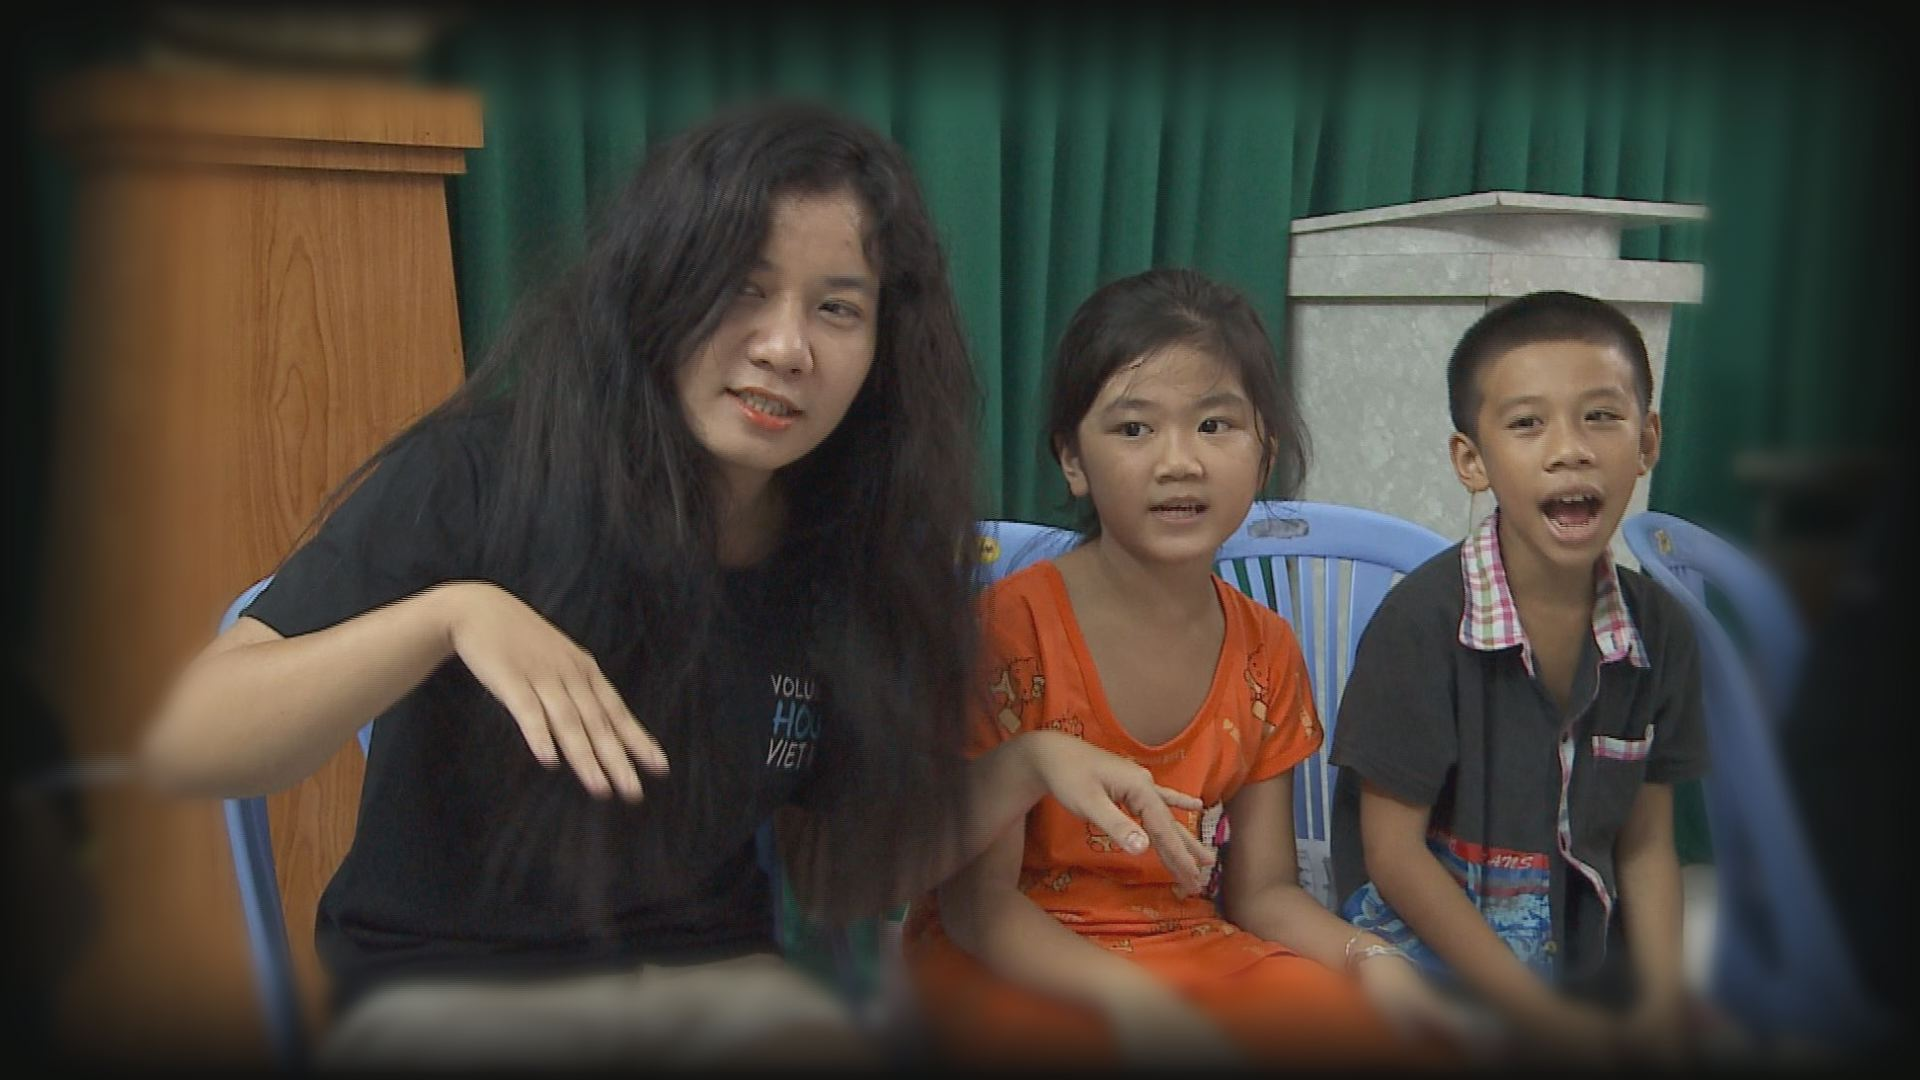 From traveling to running free-of-charge English teaching project